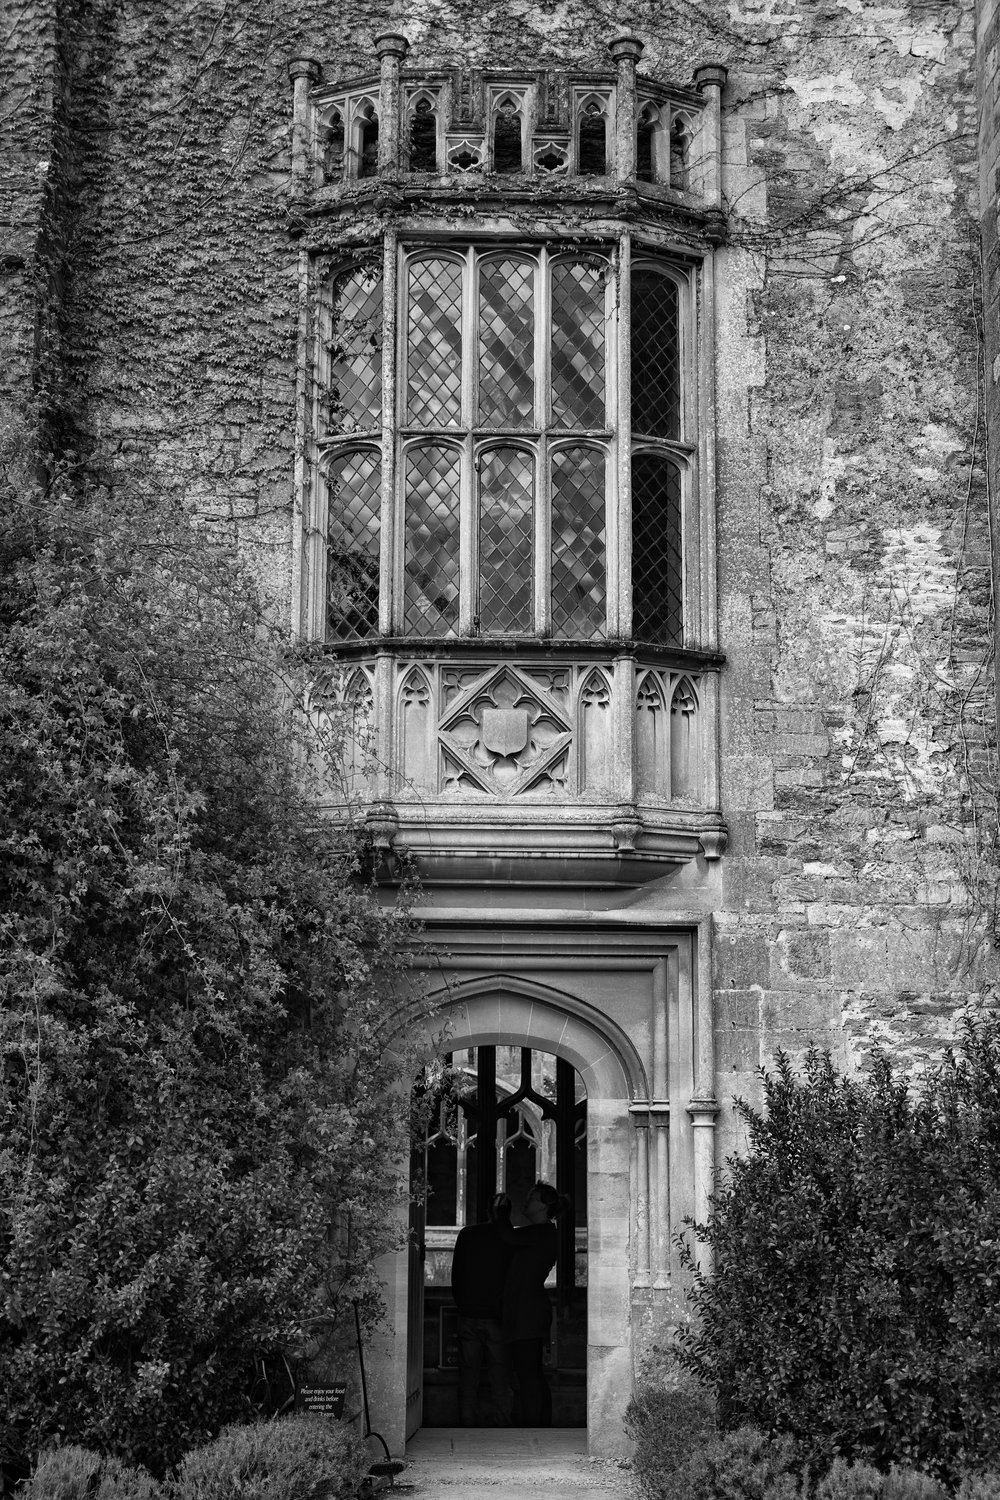 The famous oriel window seen from outside the Abbey. The cloister can be glimpsed through the archway